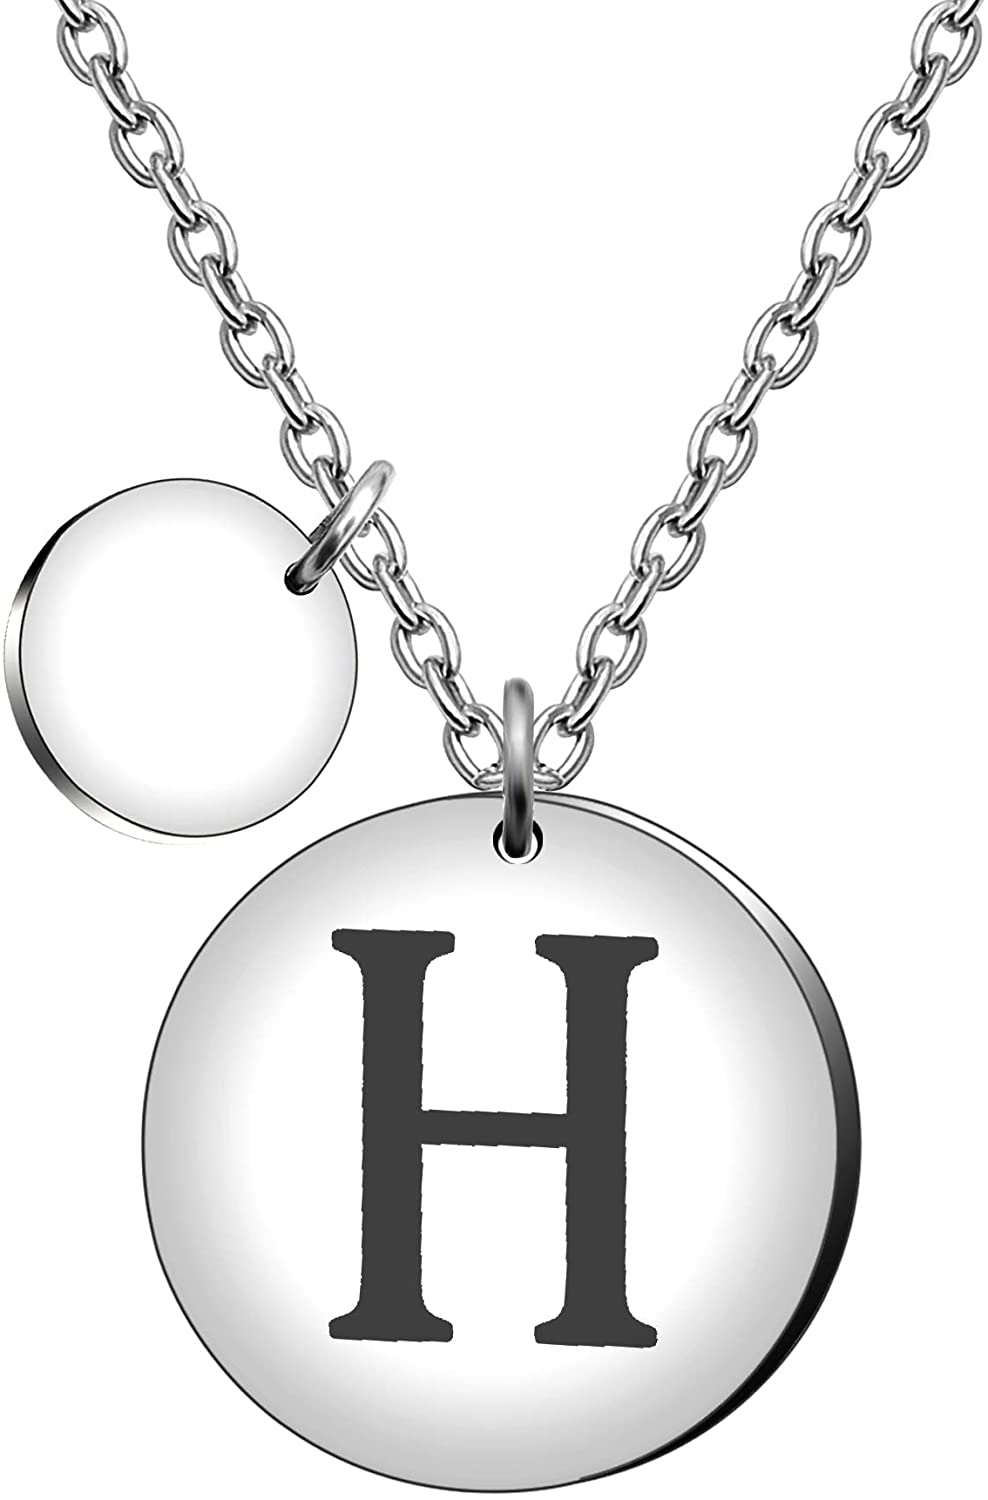 Initial A-Z 26 Letter Name Necklace Encourage Inspiration Pendant Two-Sided Lettering Silver Necklace for Women Men Kids Birthday Gift Jewelry